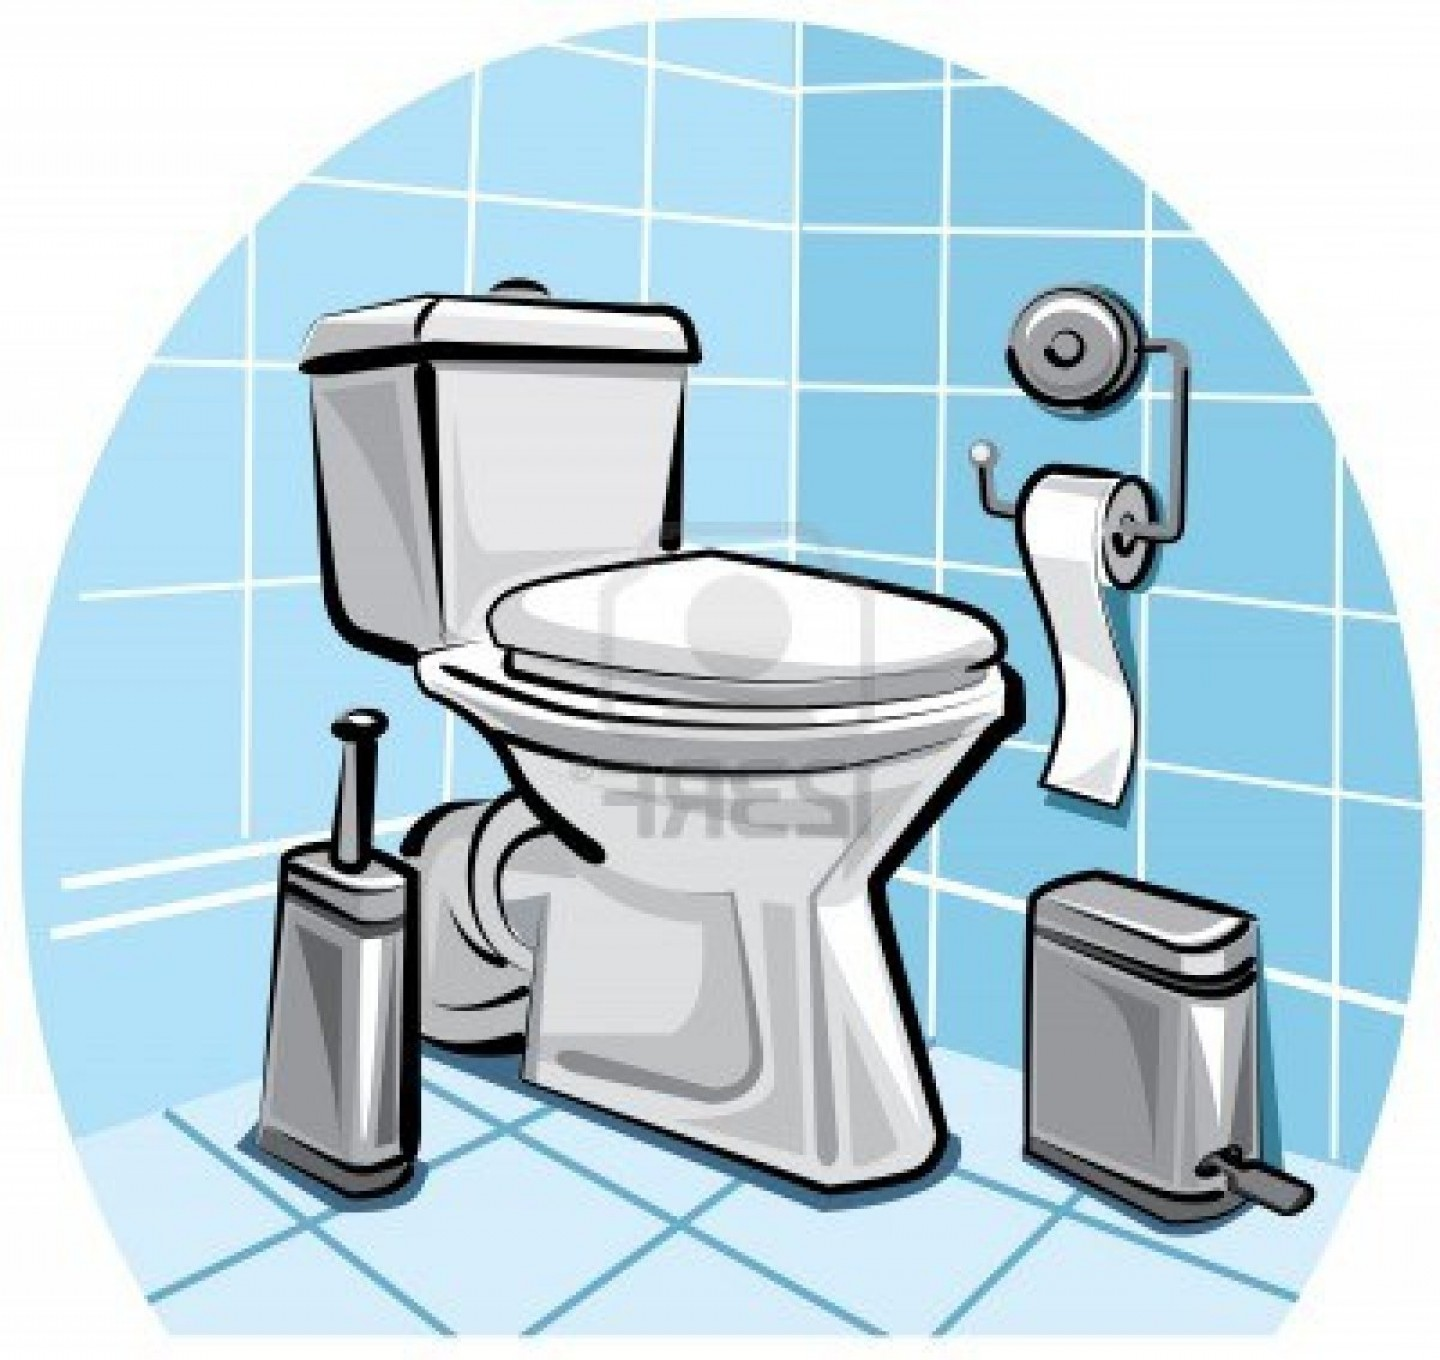 Clip Art Clean Bathroom Sink Clipart.